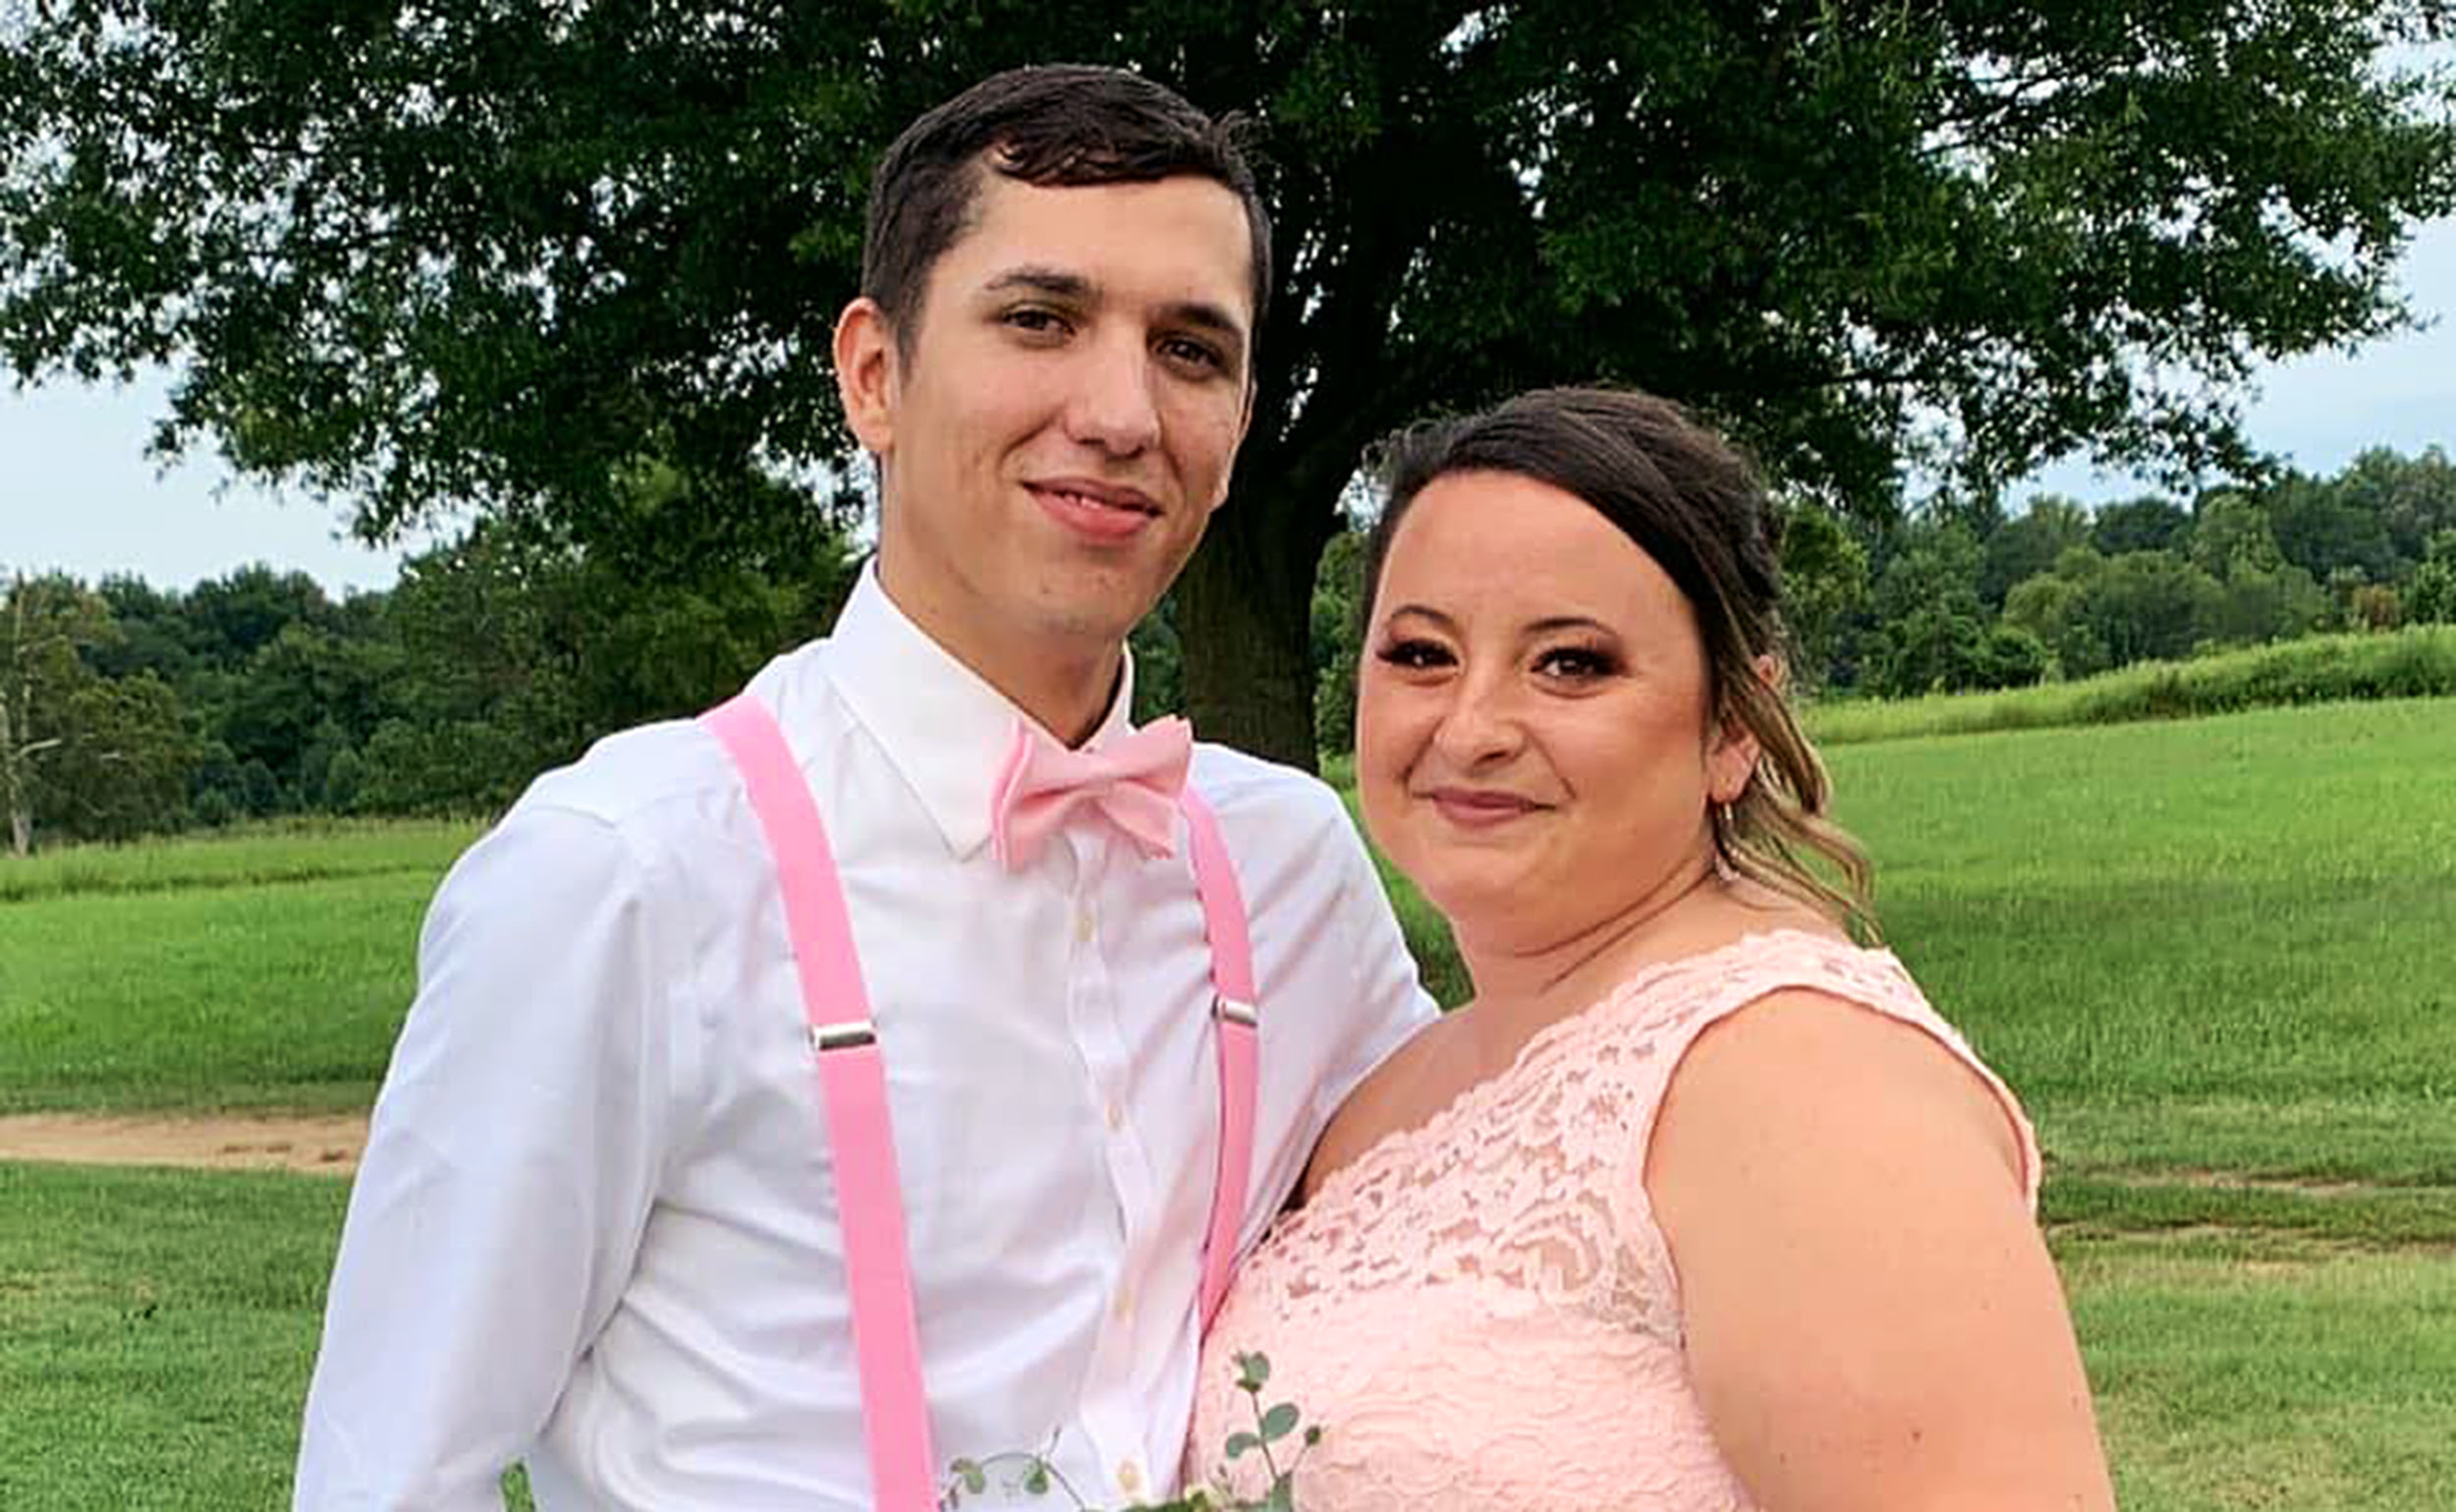 'Misinformation killed her': Bride-to-be who hesitated to get vaccinated dies of Covid